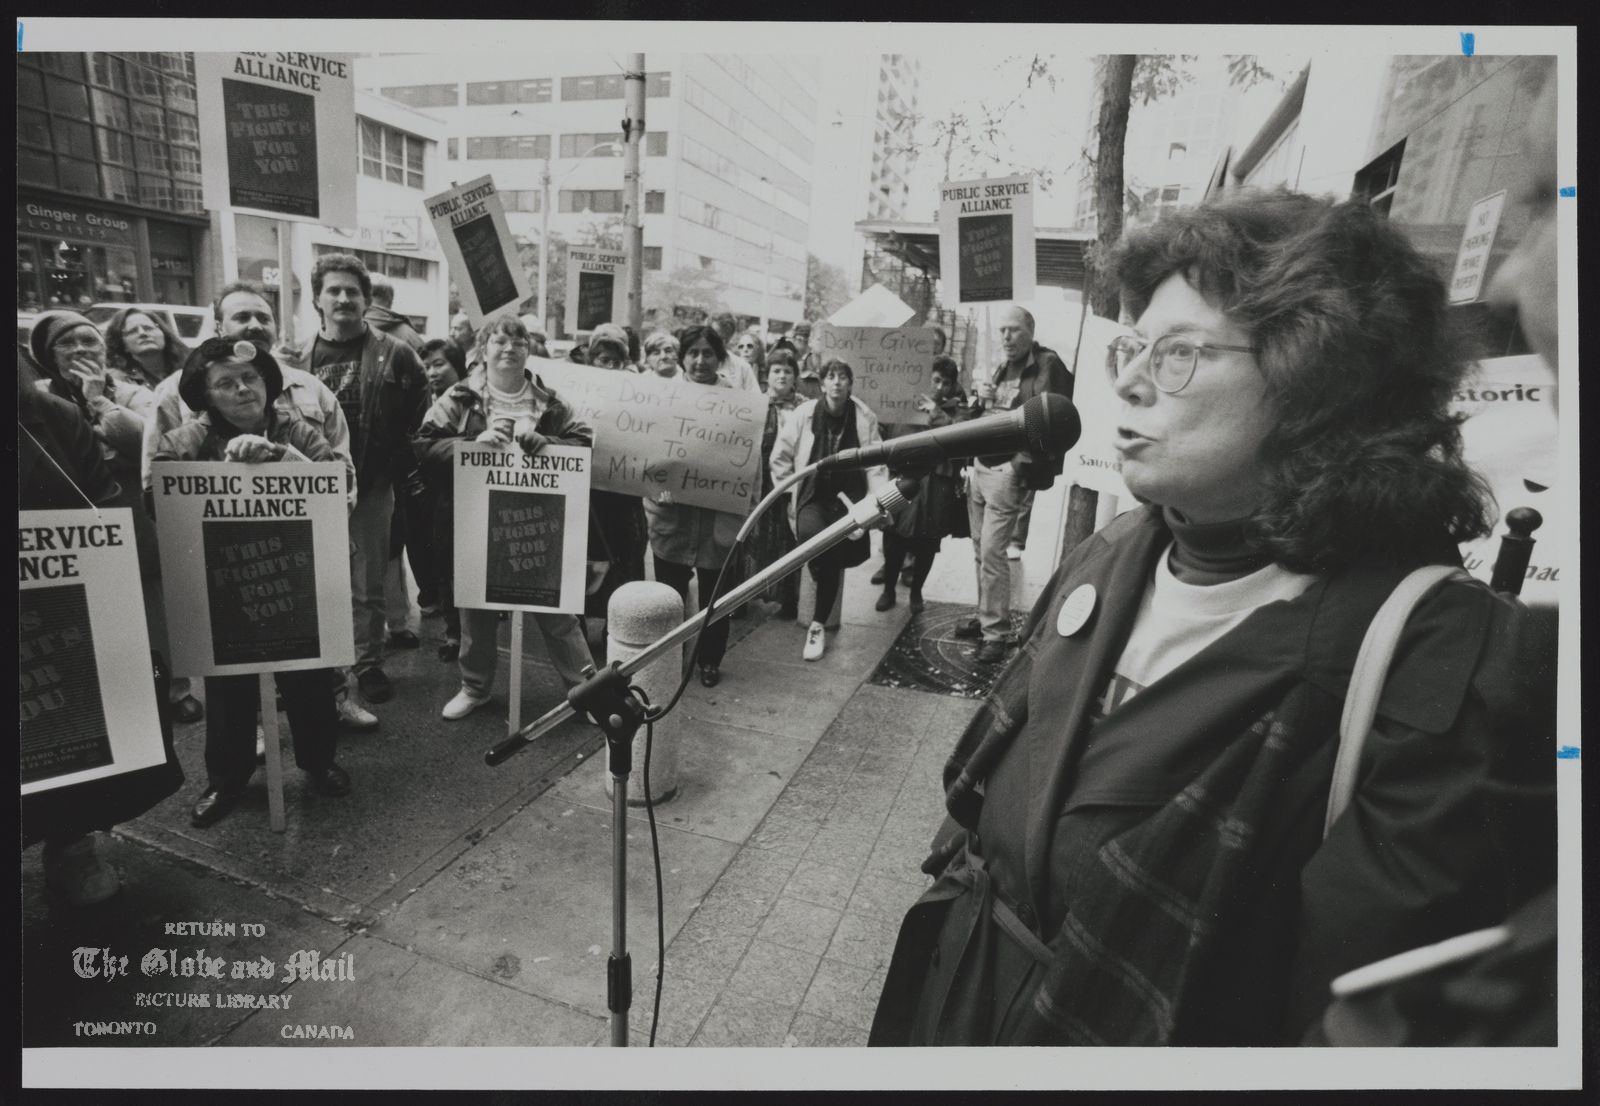 The notes transcribed from the back of this photograph are as follows: LABOUR LEADER LINDA TORNEY SPEAKS AT A RALLY IN TORONTO, A WARNING FOR THE DAYS OF ACTION PROTEST TAKING PLACE IN THE CITY OVER THE NEXT TWO DAYS.